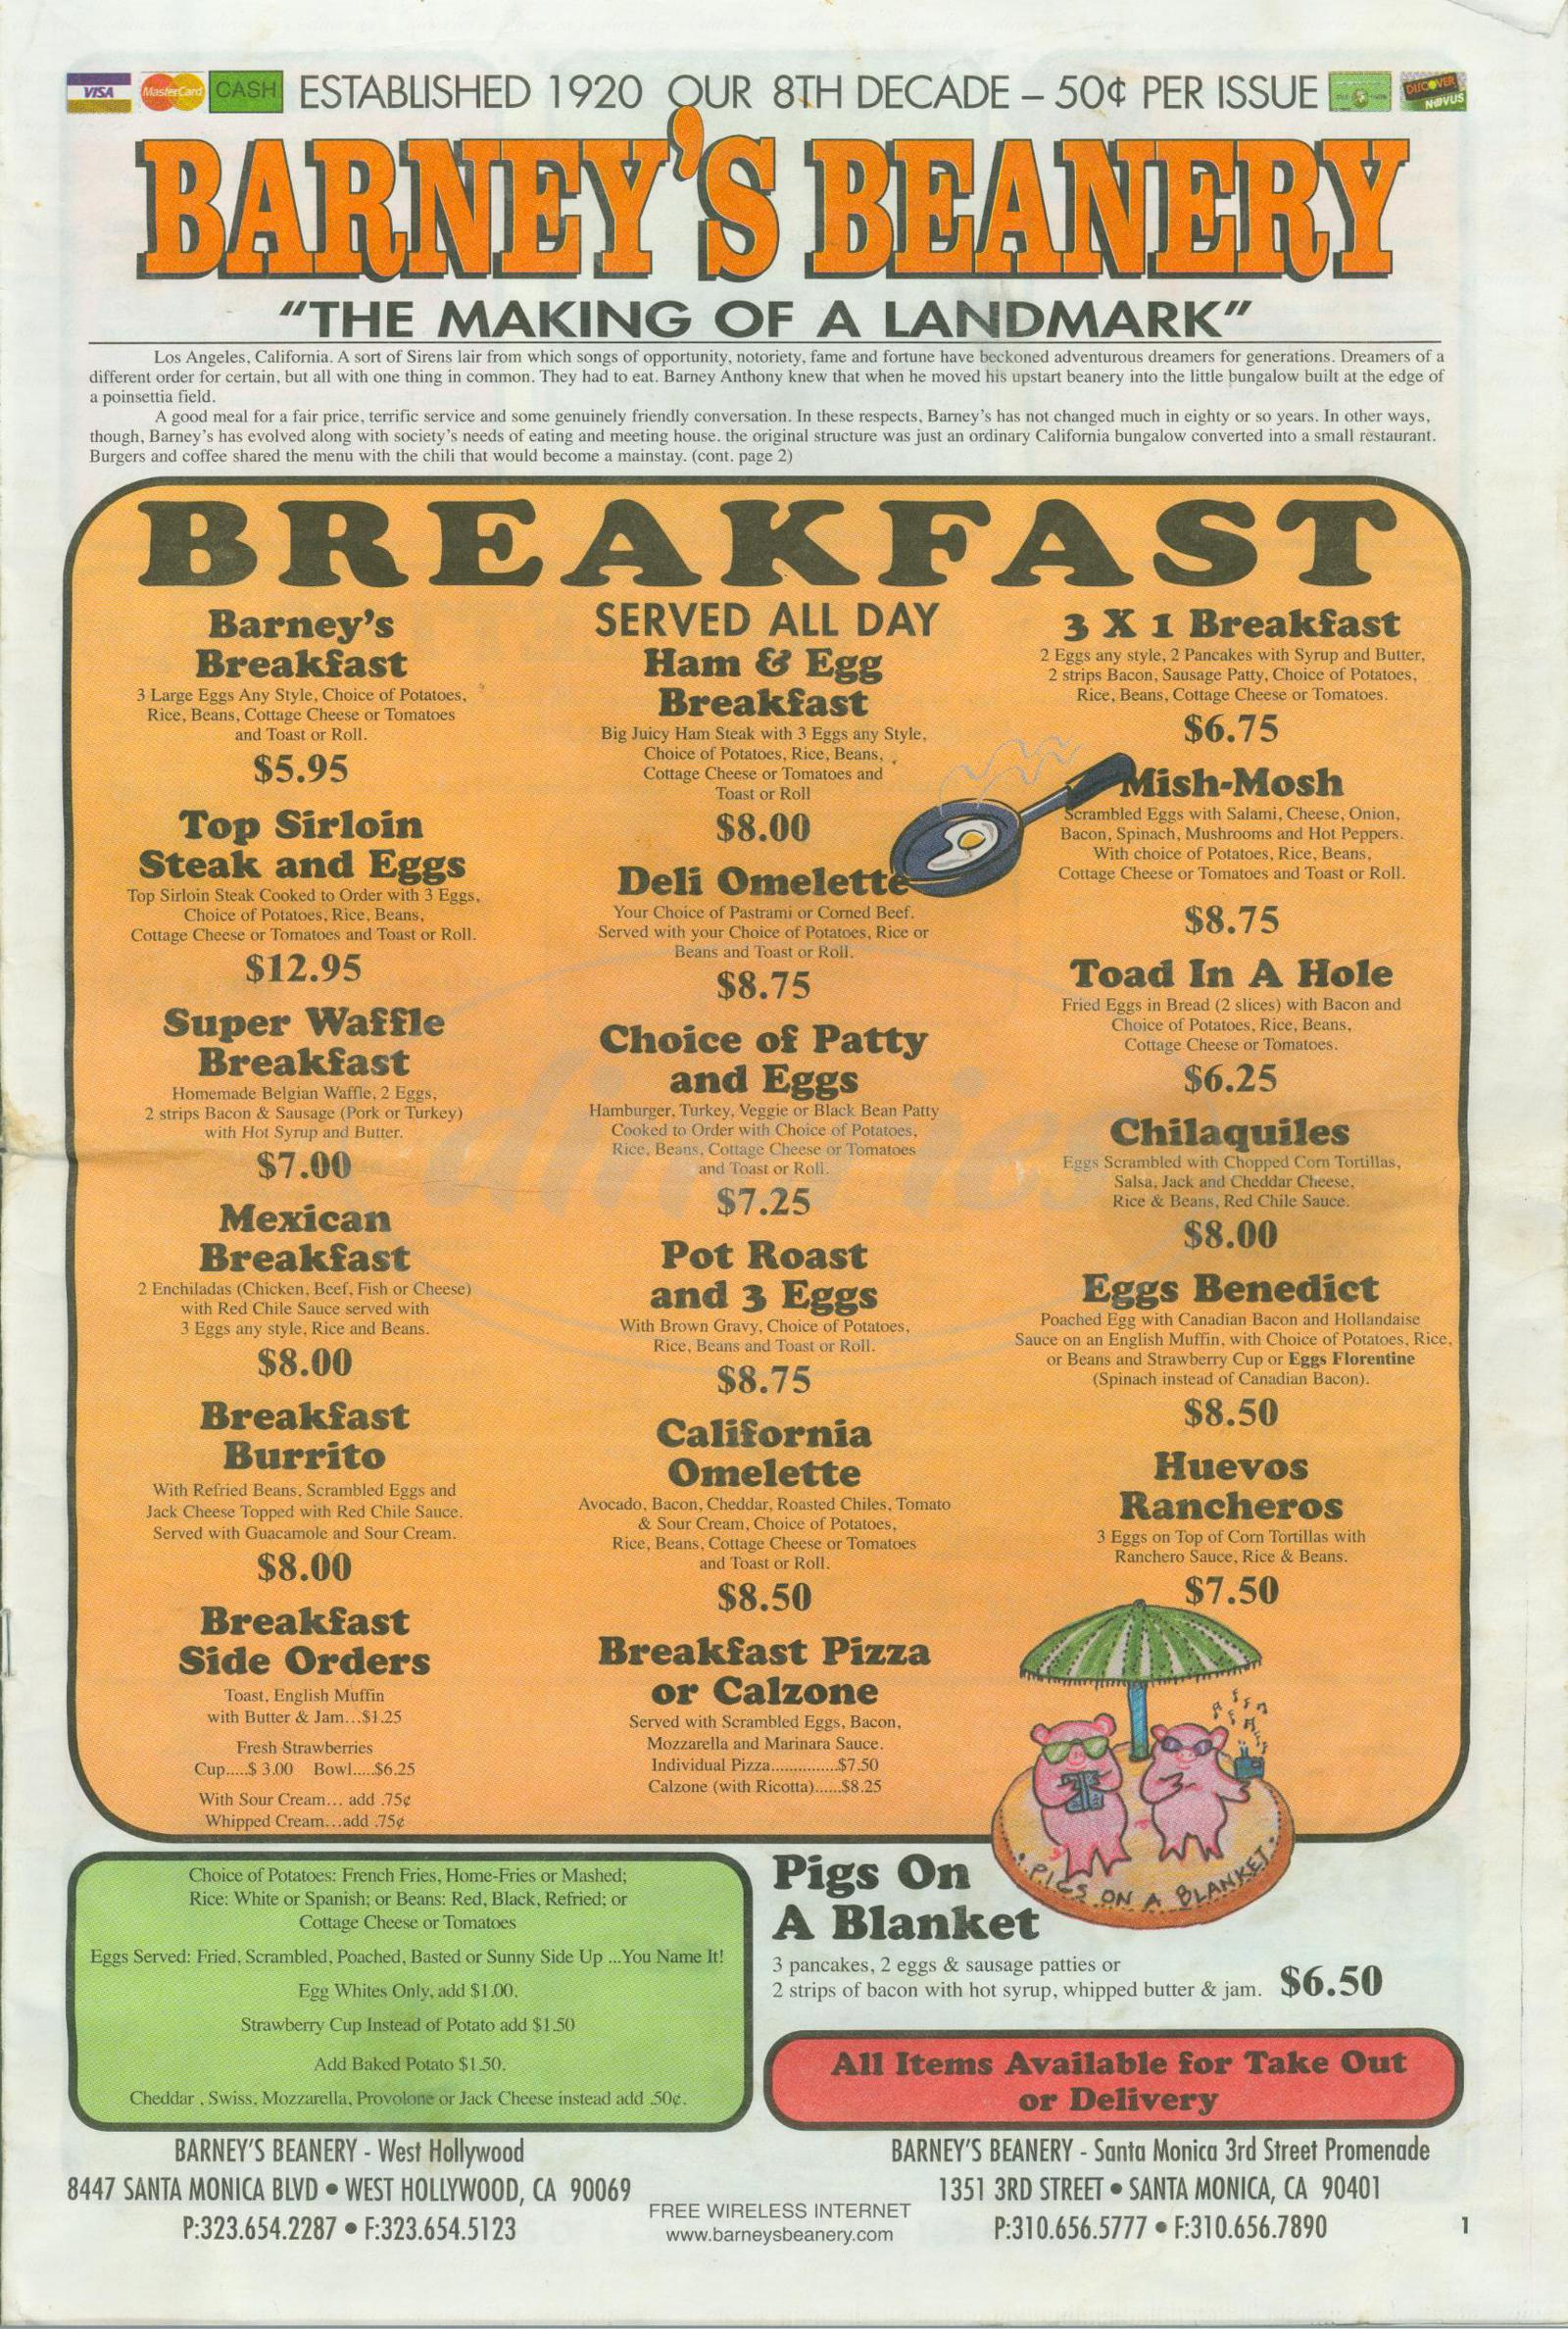 menu for Barney's Beanery